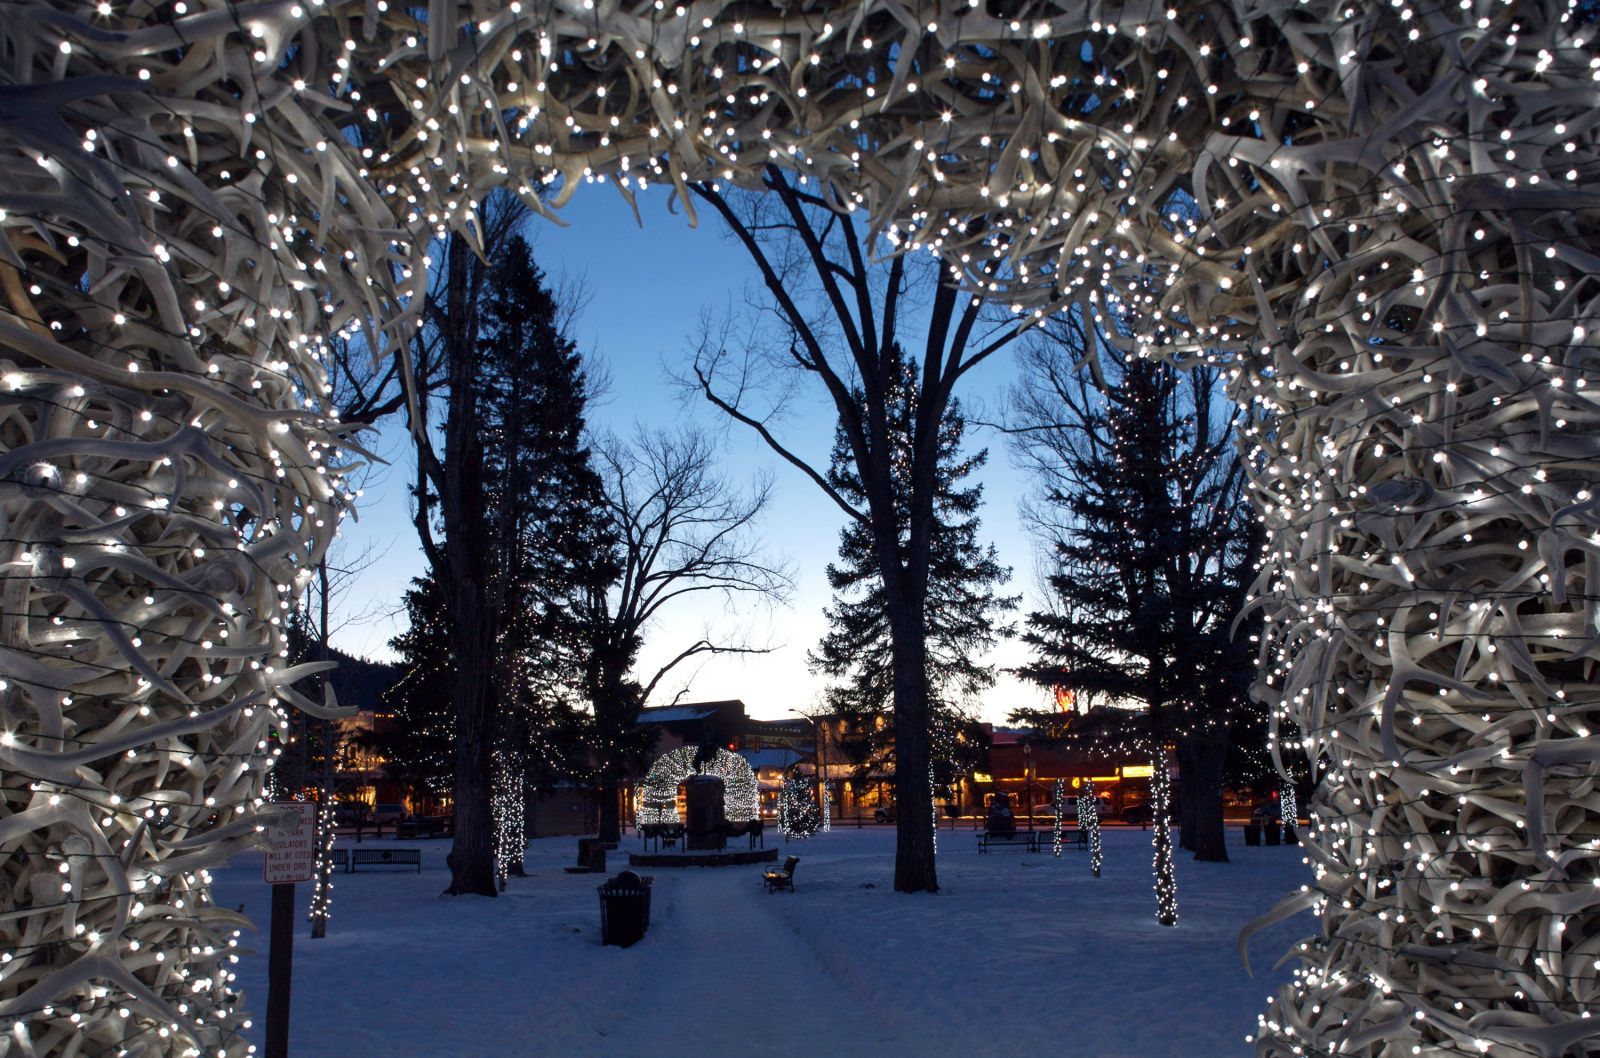 americas 20 best small towns for christmas jackson hole wyoming - Small Town Christmas